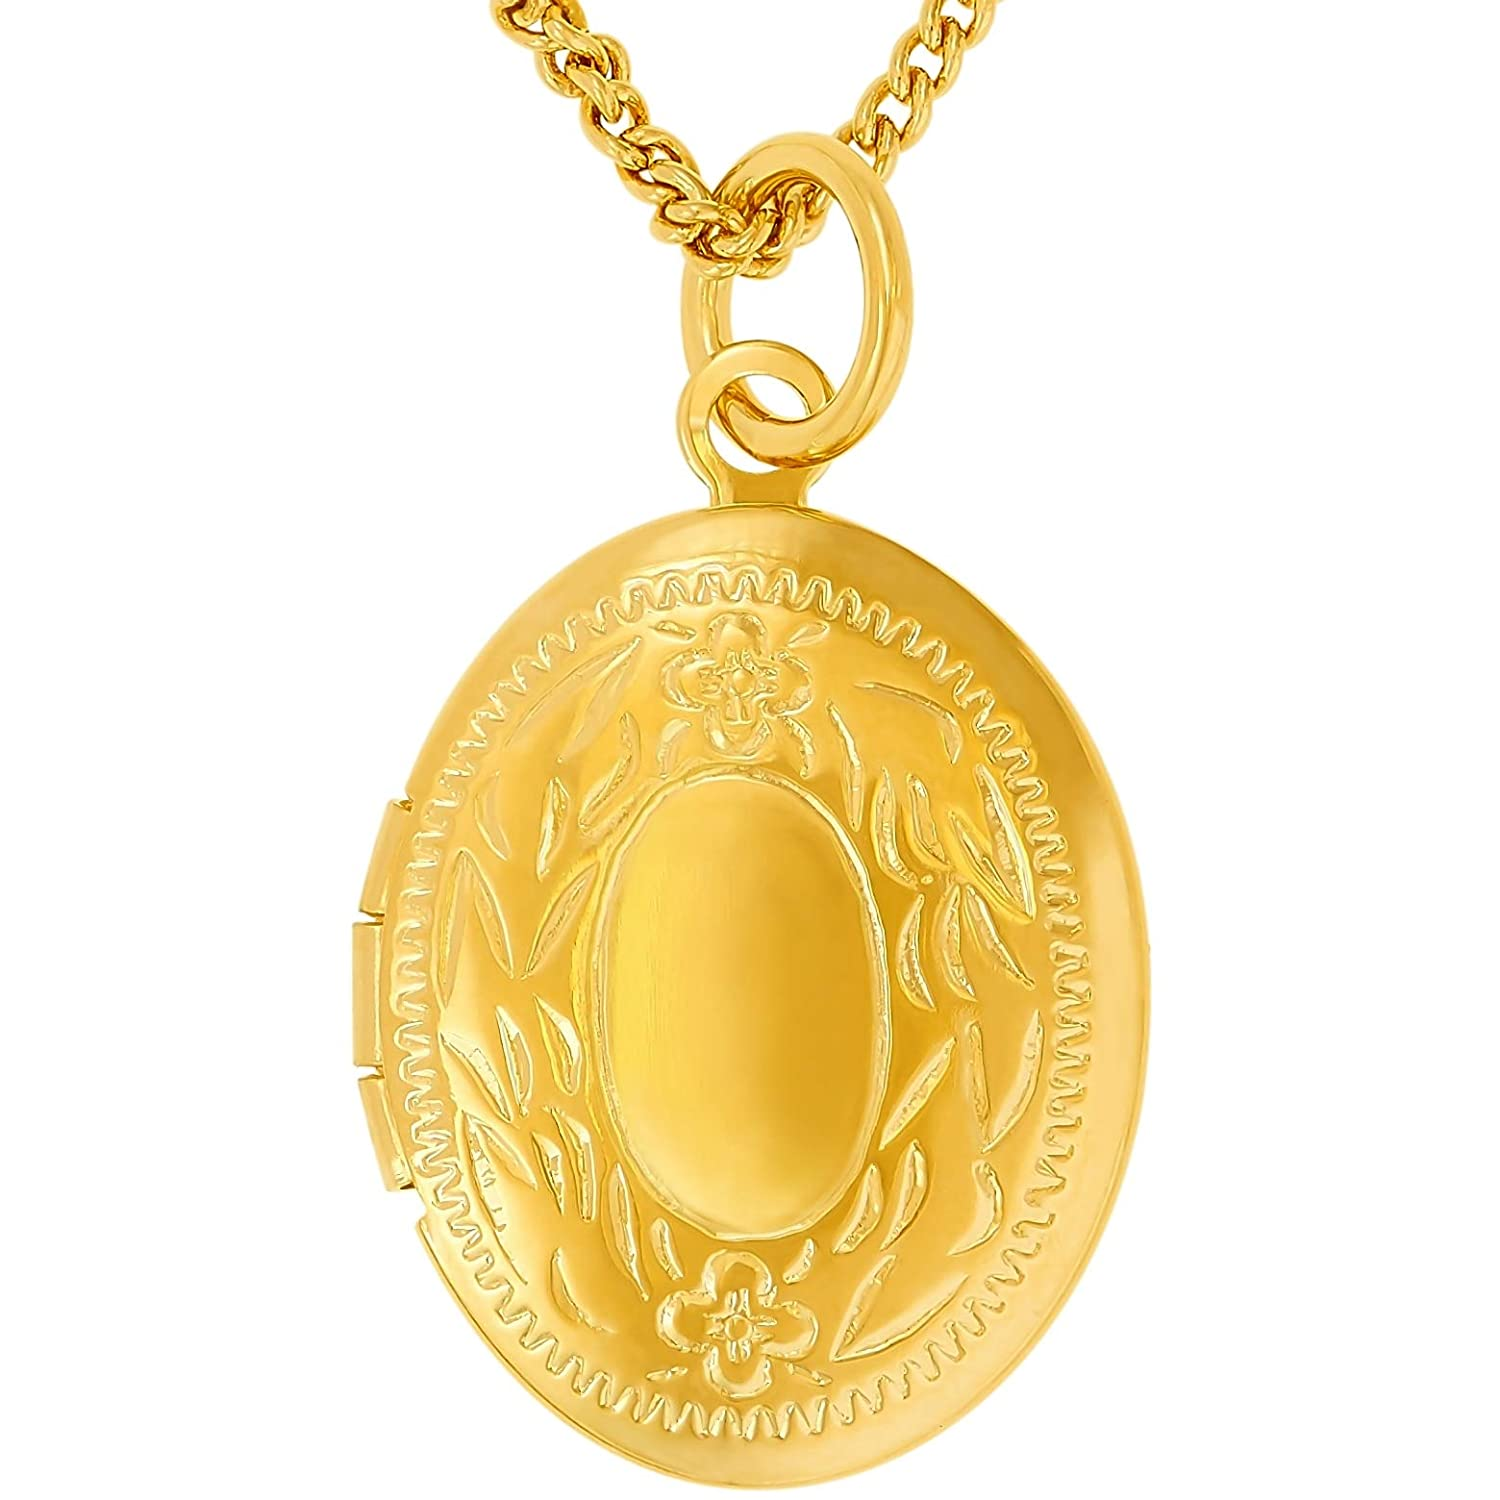 Free Lifetime Replacement Guarantee Up to 20X More 24k Plating Than Other Photo Lockets Oval Gold Locket Lifetime Jewelry Locket Necklace That Holds Pictures Jewelry for Girls and Women